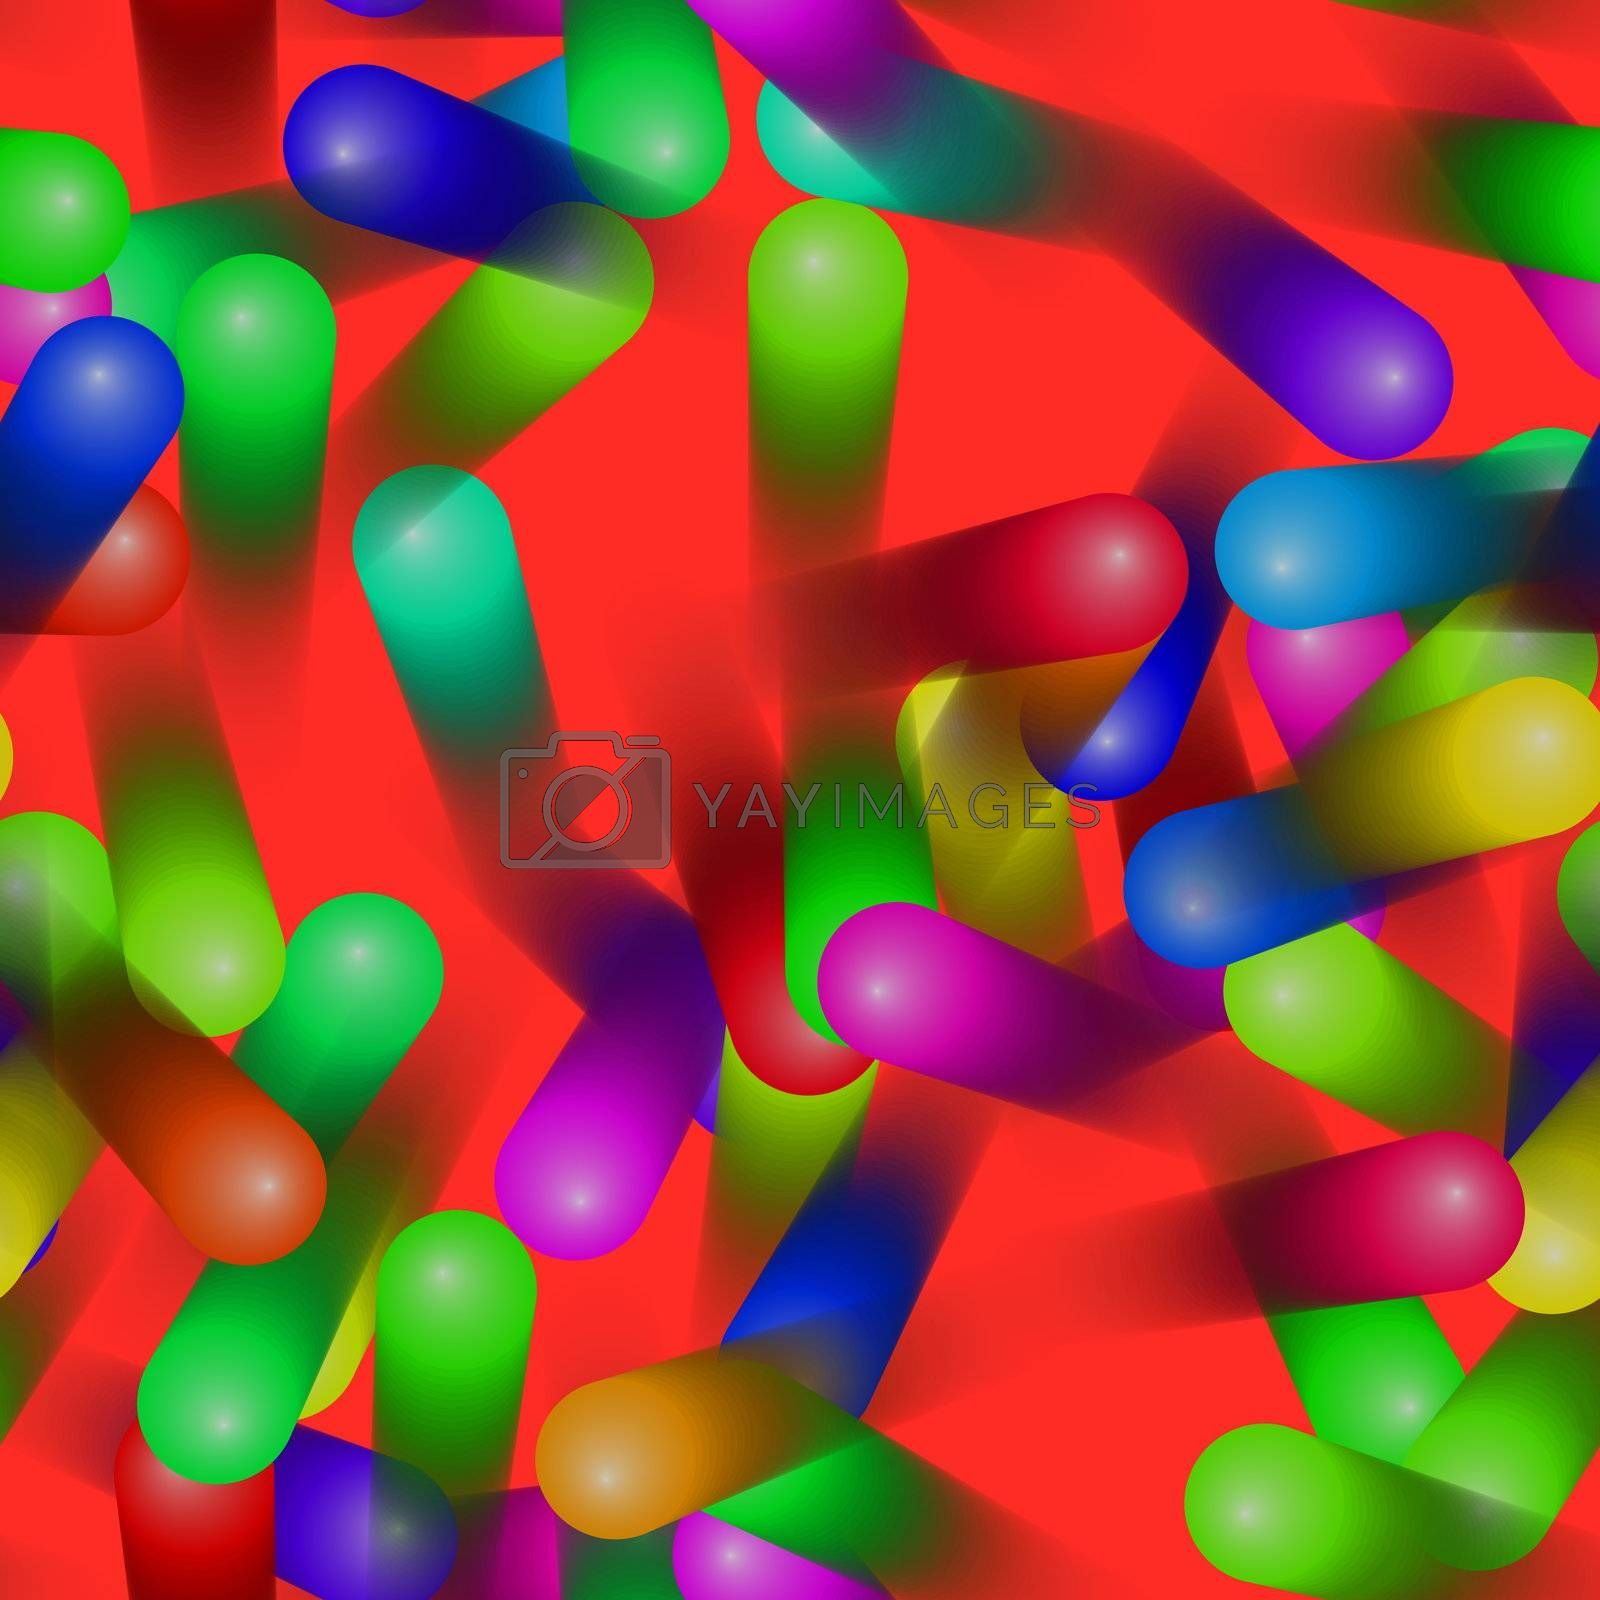 Colorful moving jellybean wallpaper by kgtoh